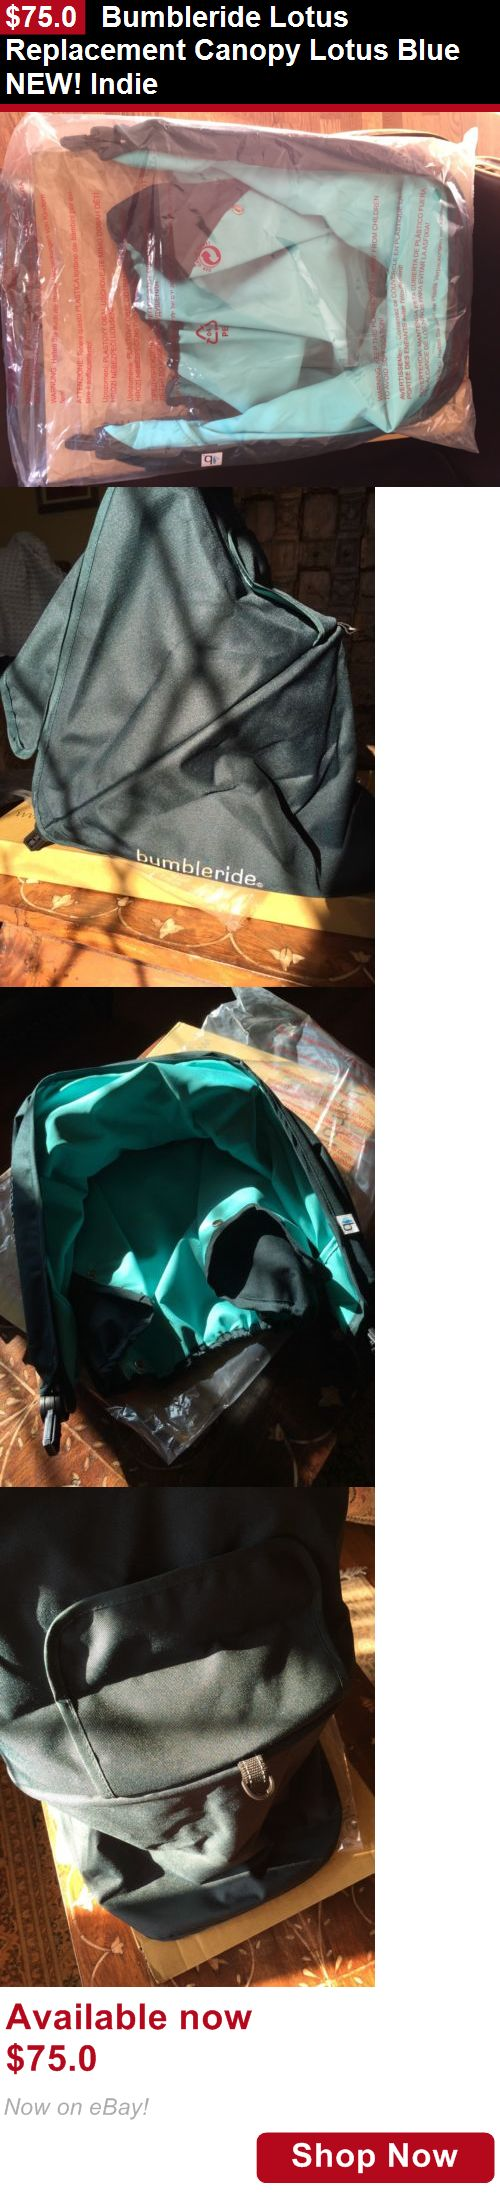 Covers Canopies And Umbrellas: Bumbleride Lotus Replacement Canopy Lotus Blue New! Indie BUY IT NOW ONLY: $75.0